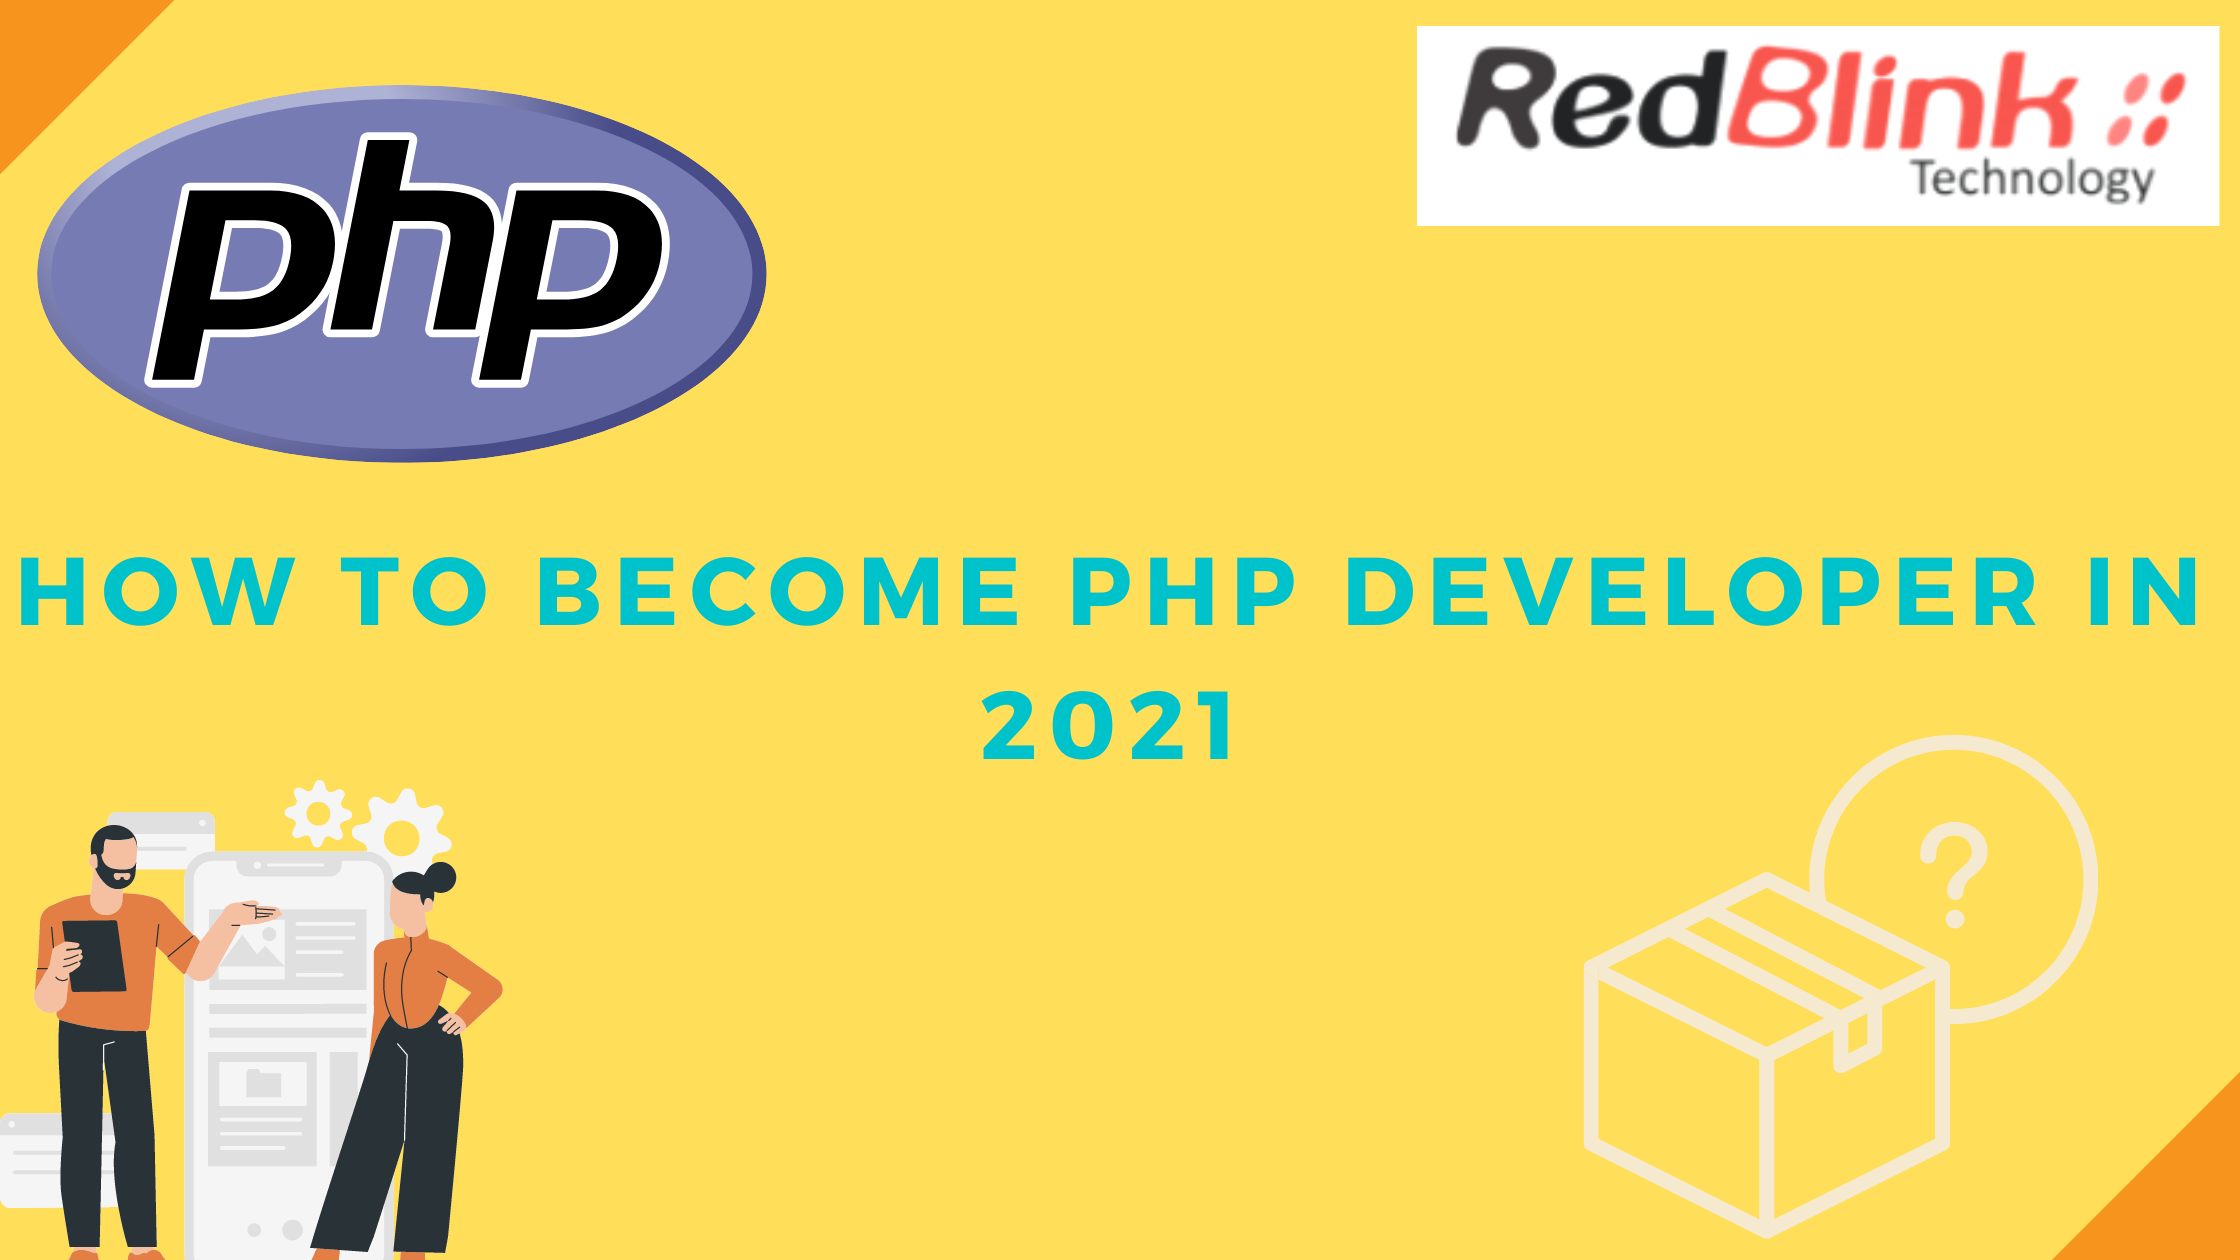 How To Become PHP Developer In 2021 (1)